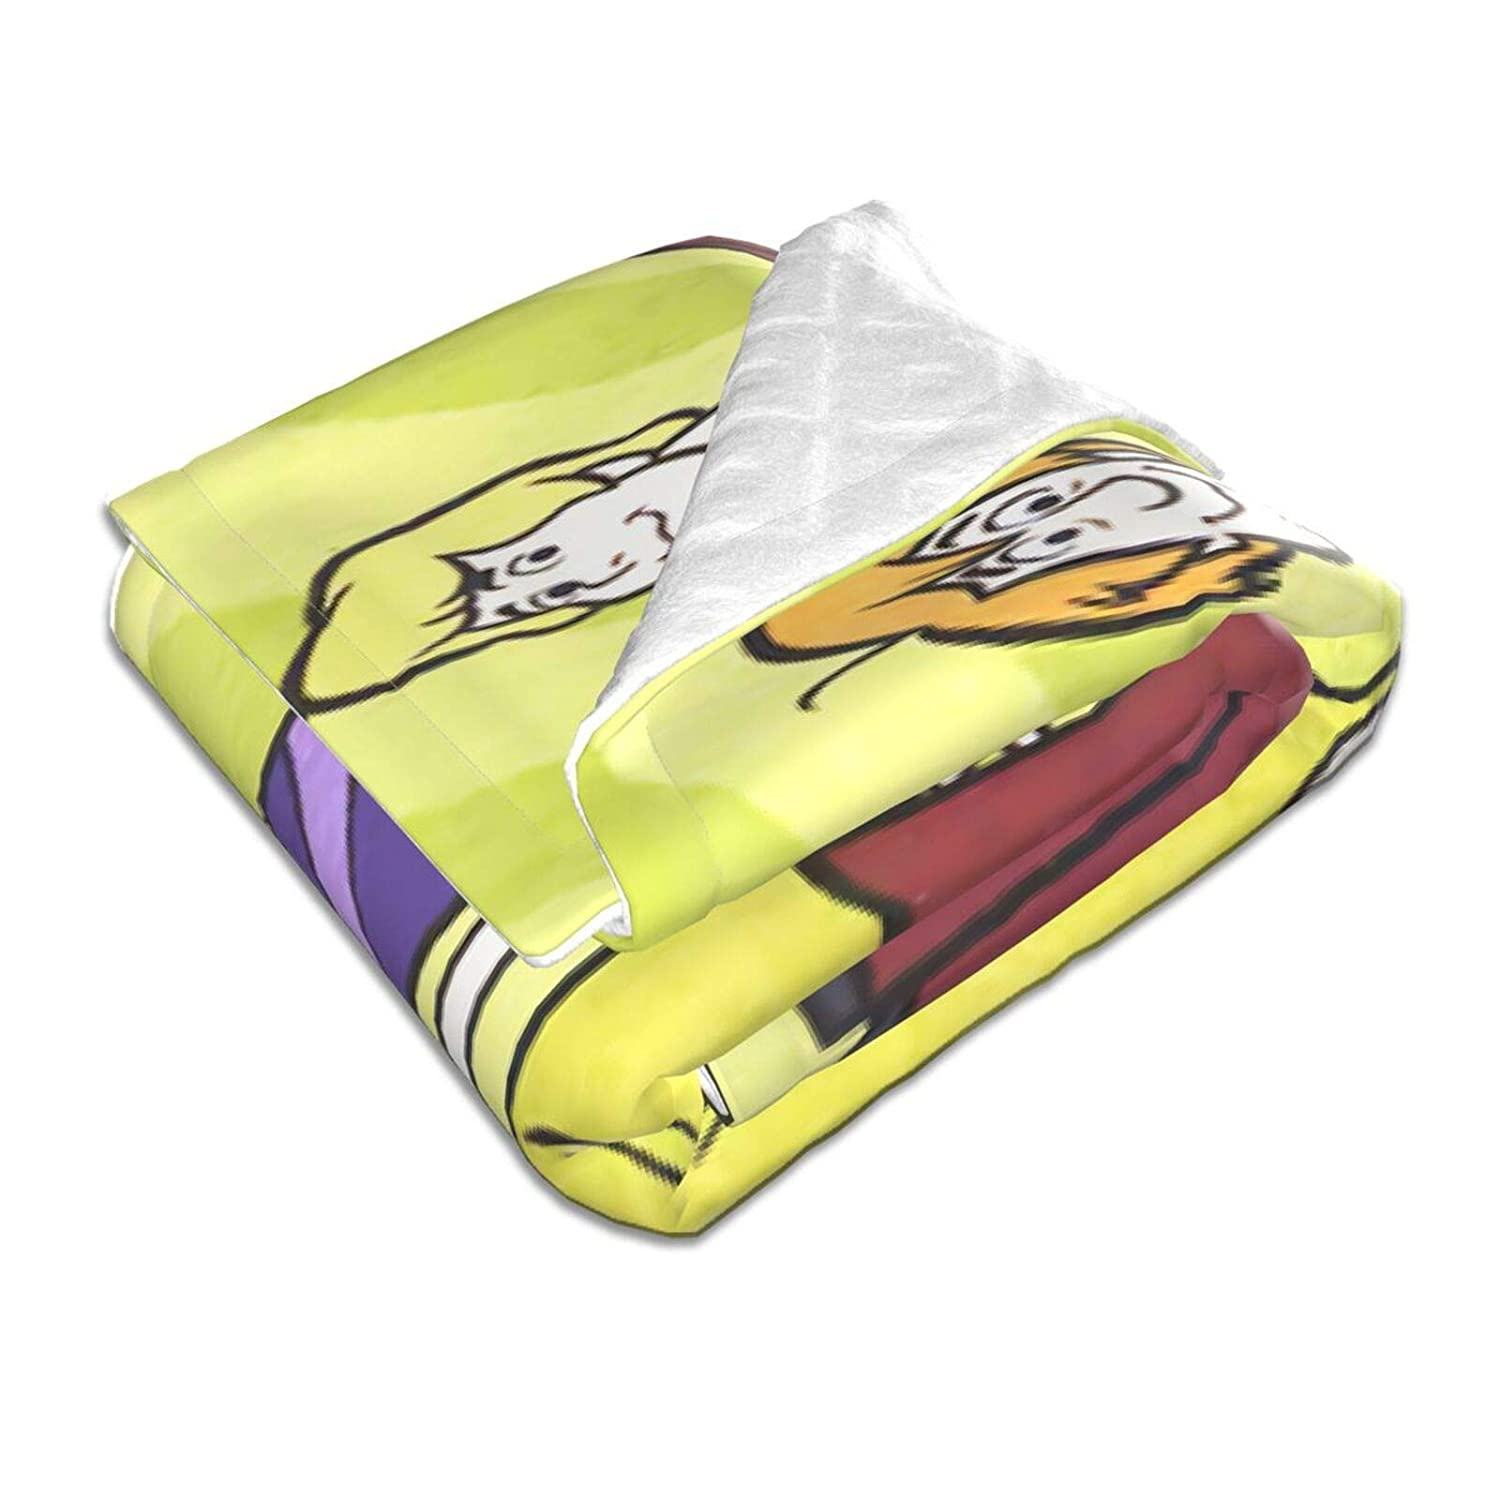 Scooby-Doo Super Soft Receiving Blankets for Newborns and Toddlers Daycare Preschool 30x41 Inch Baby Blanket